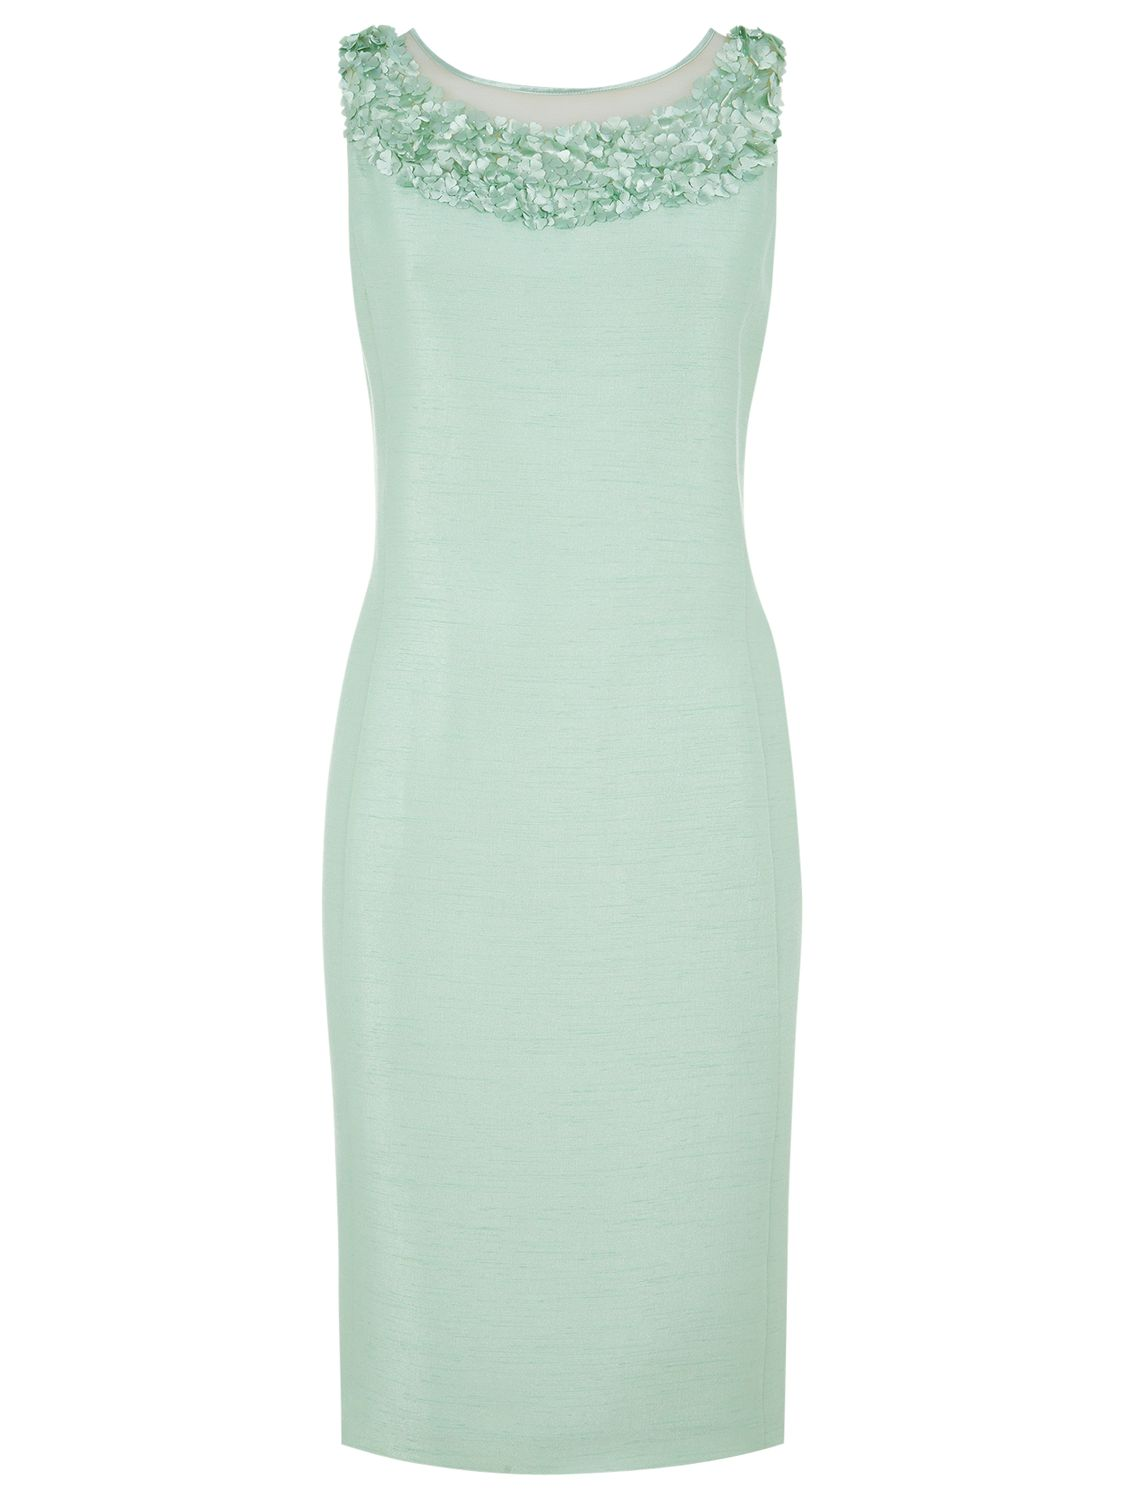 jacques vert flower embellished shift dress light green, jacques, vert, flower, embellished, shift, dress, light, green, jacques vert, 14|16|10|12|20|18|24|8|22, women, womens dresses, gifts, wedding, wedding clothing, mother of the bride, female guests, 1841436